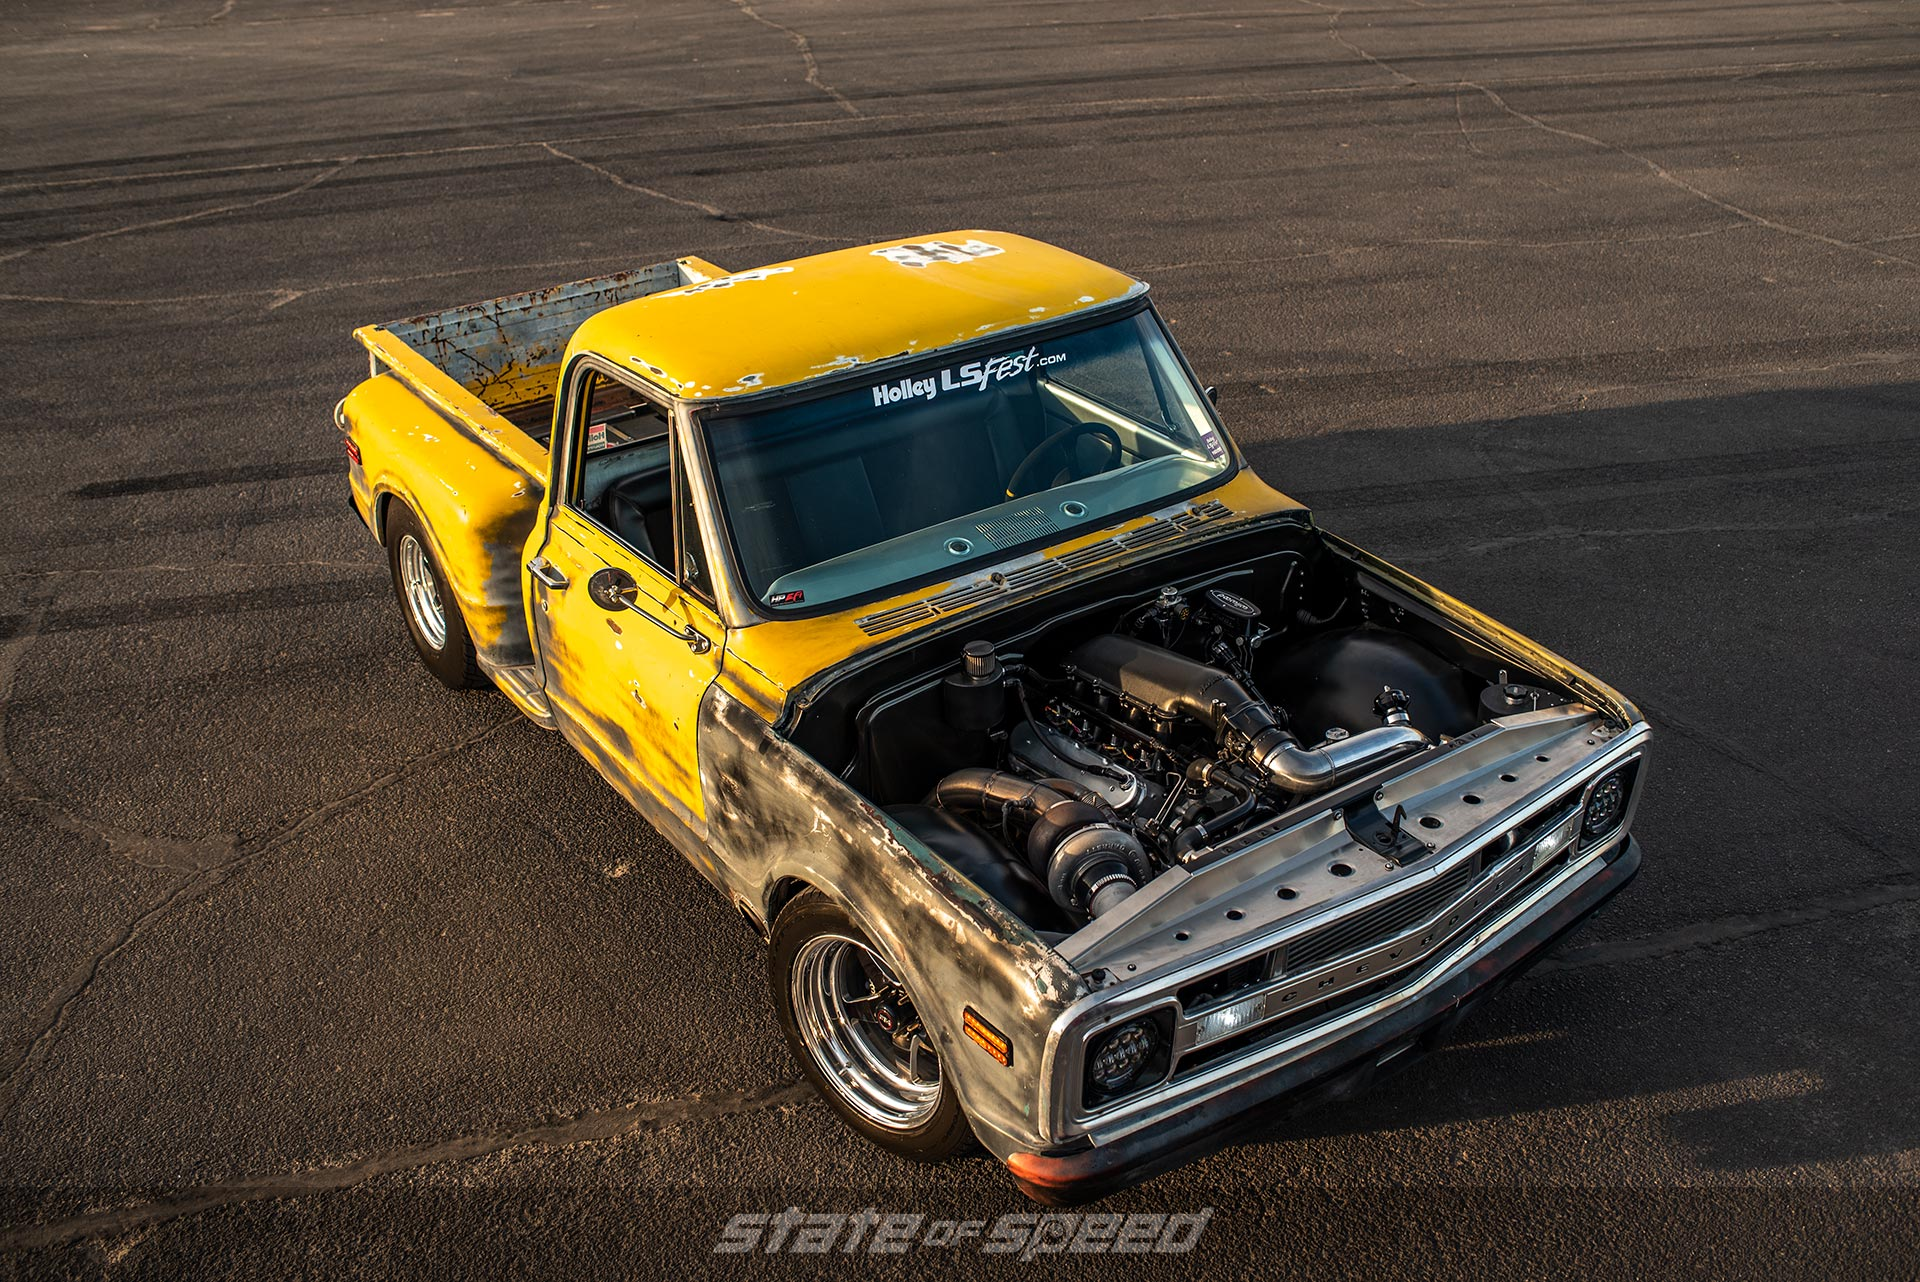 C10 with a turbocharged LS engine